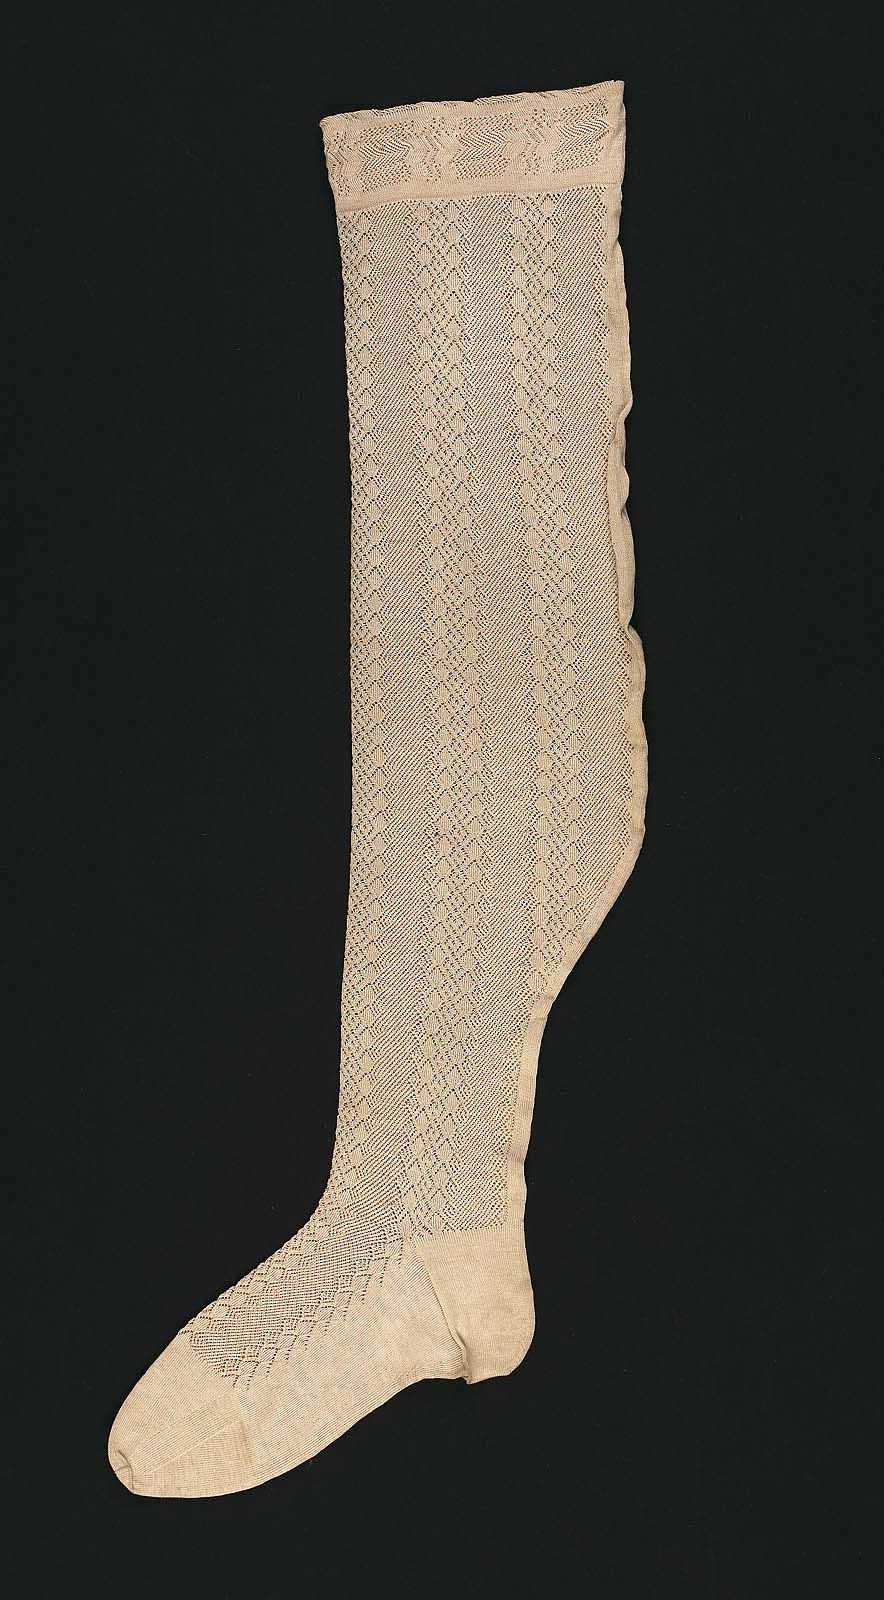 19e03591b Woman s openwork stocking. Knitted white lisle (cotton) with alternating  vertical openwork bands of diamonds and zig-zags. MFA Boston Accession    69.700